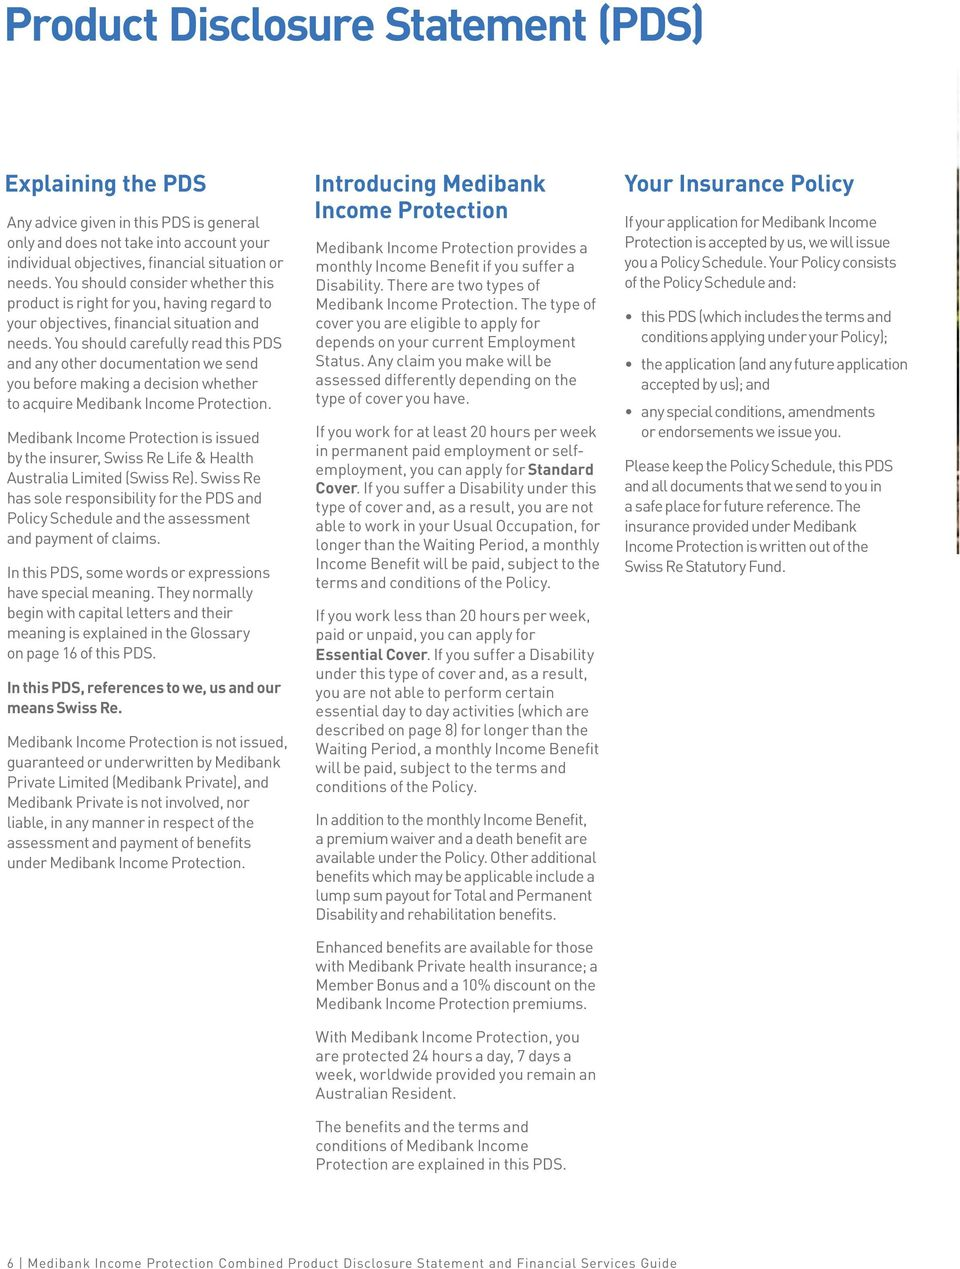 You should carefully read this PDS and any other documentation we send you before making a decision whether to acquire Medibank Income Protection.